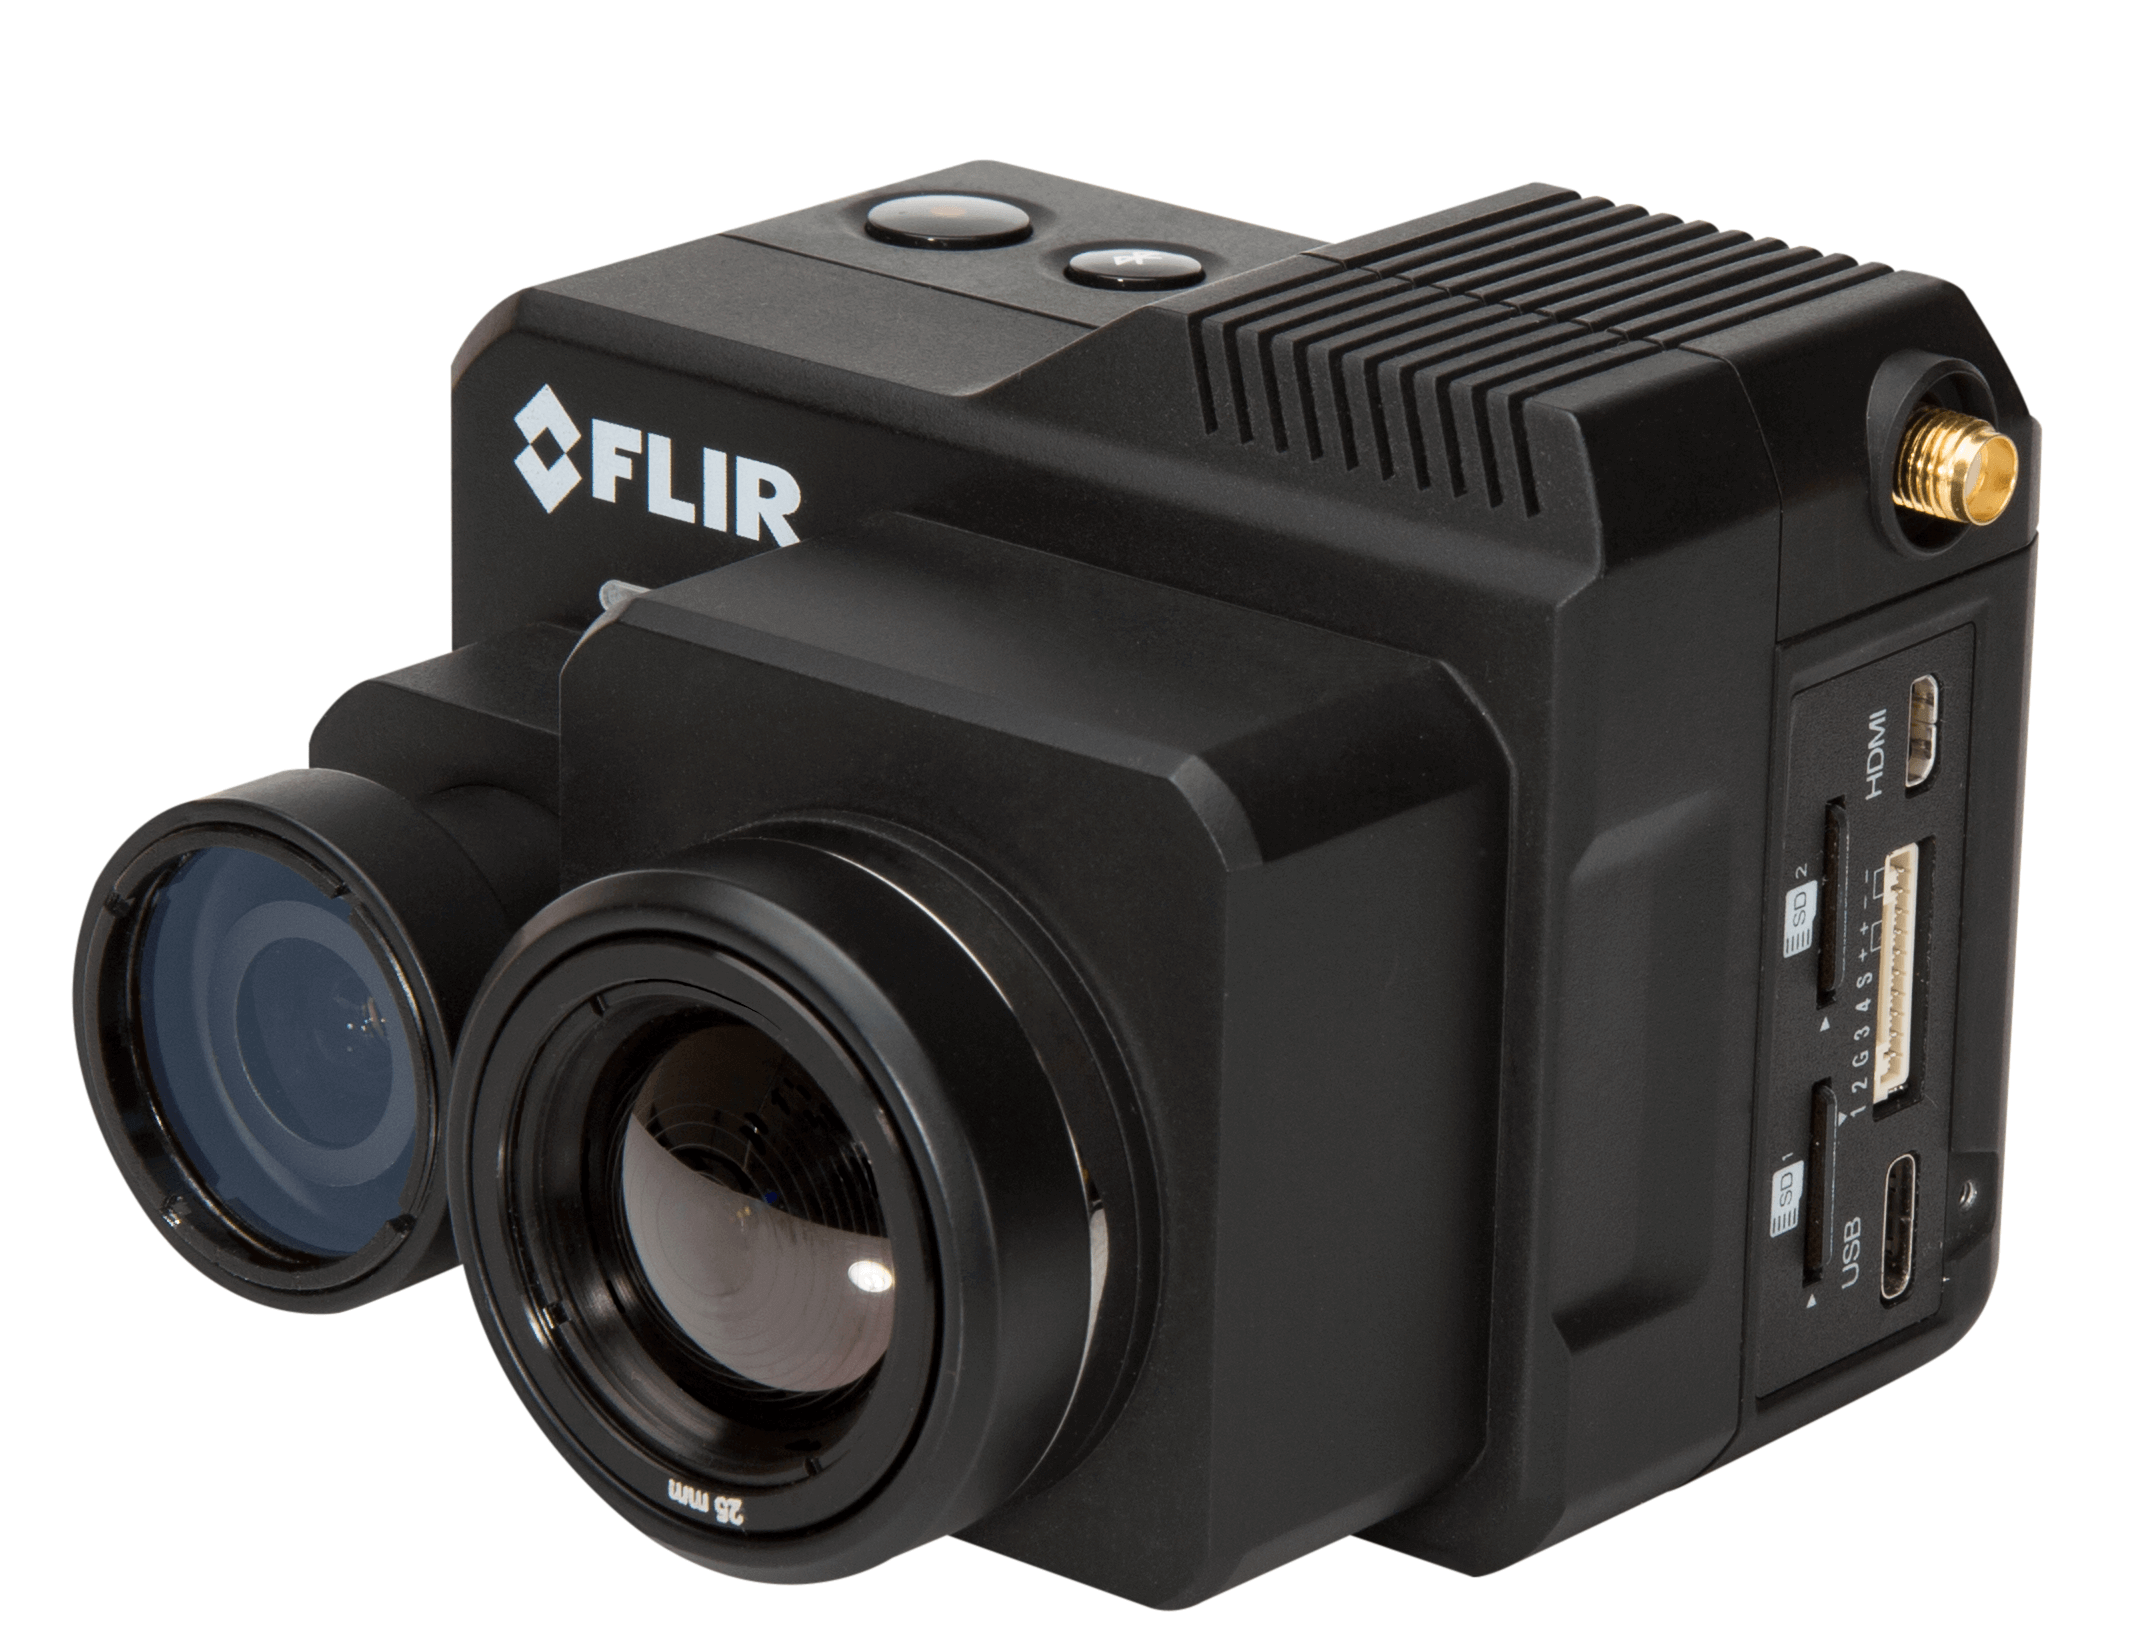 FLIR's New Drone Camera Offers Both Thermal and 4K Video